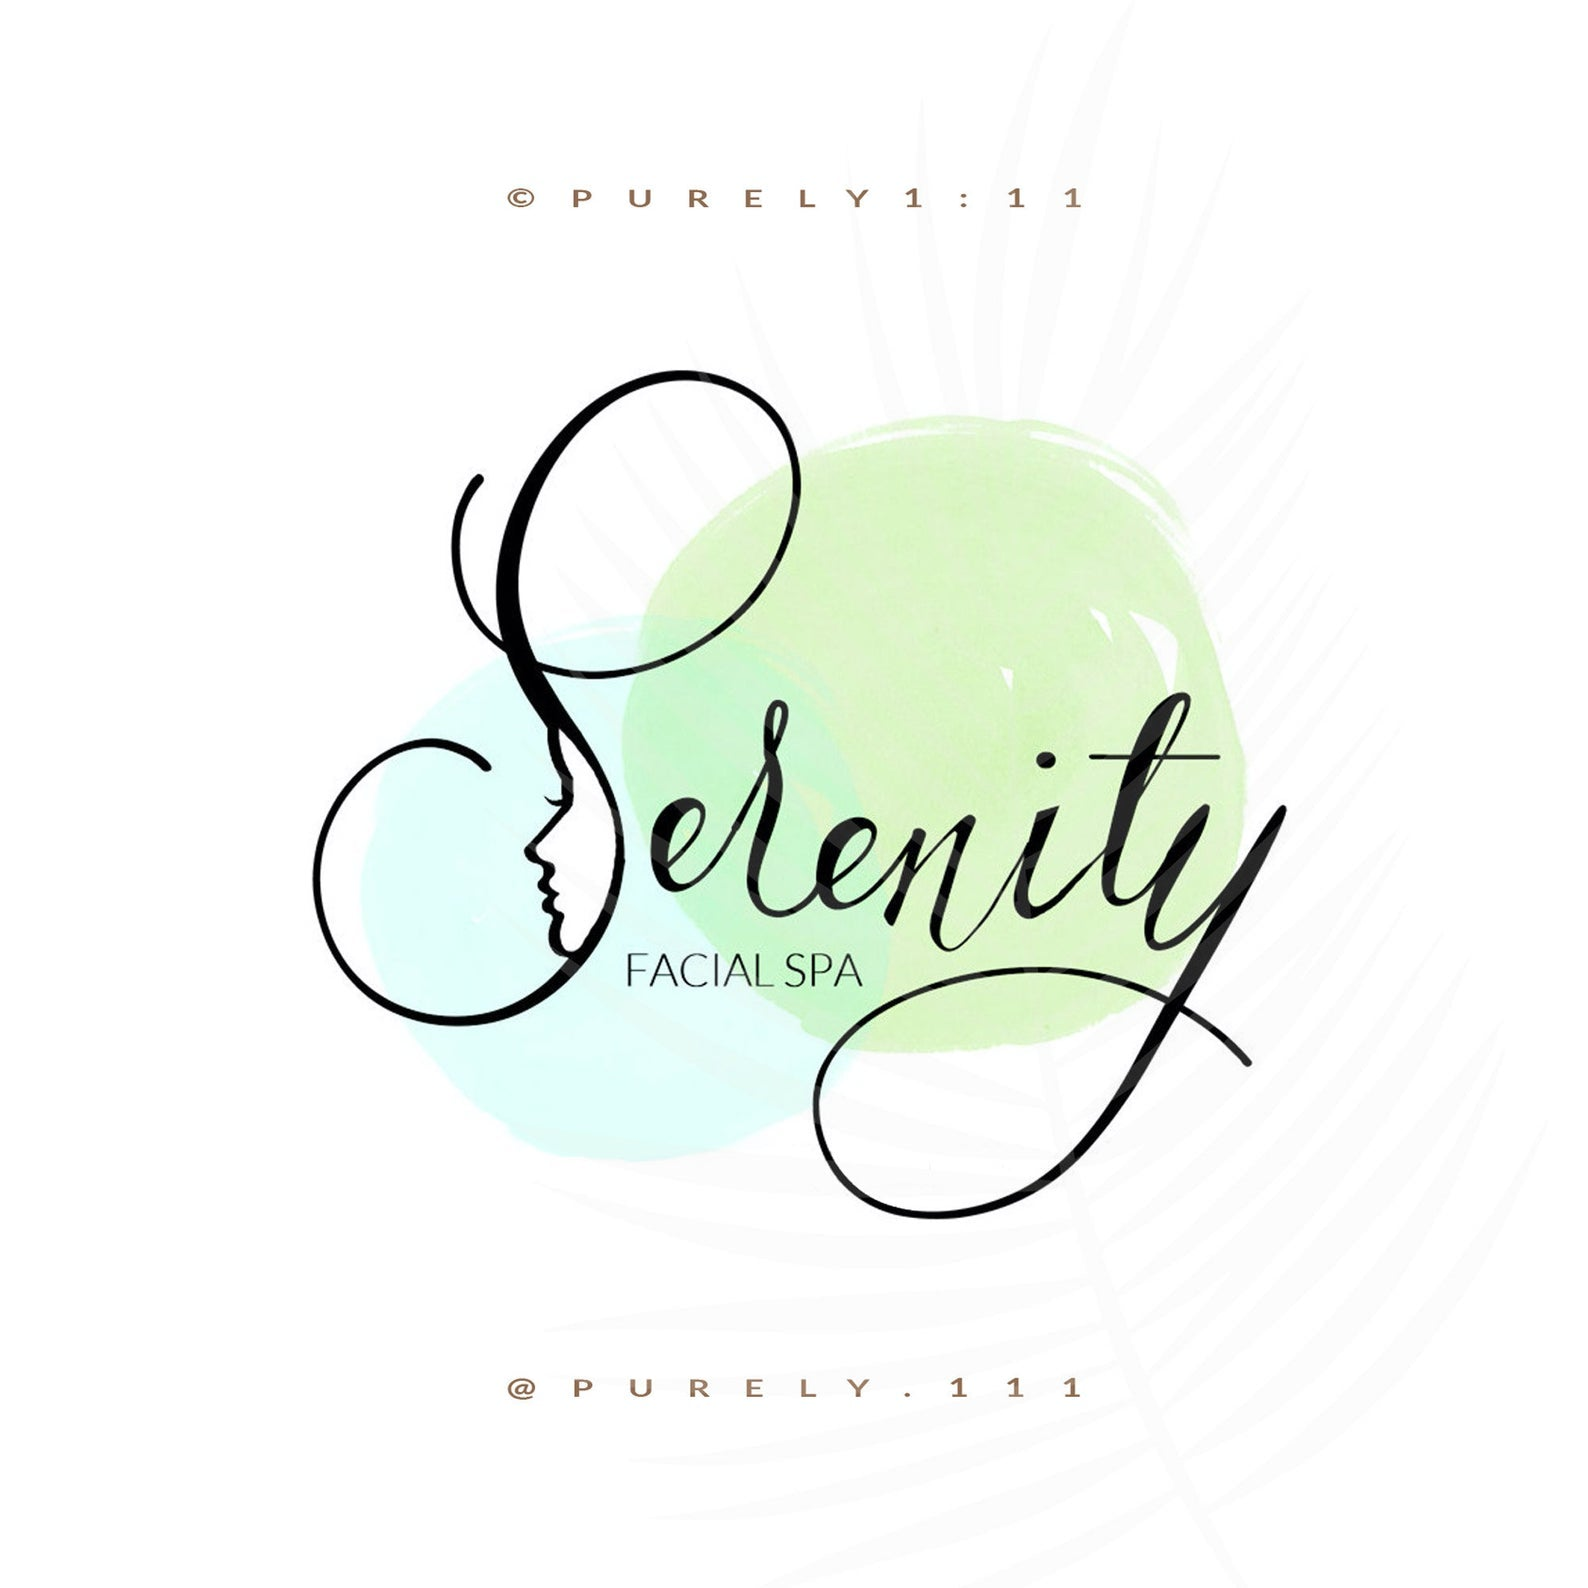 Serenity Facial Spa - Purely 1:11